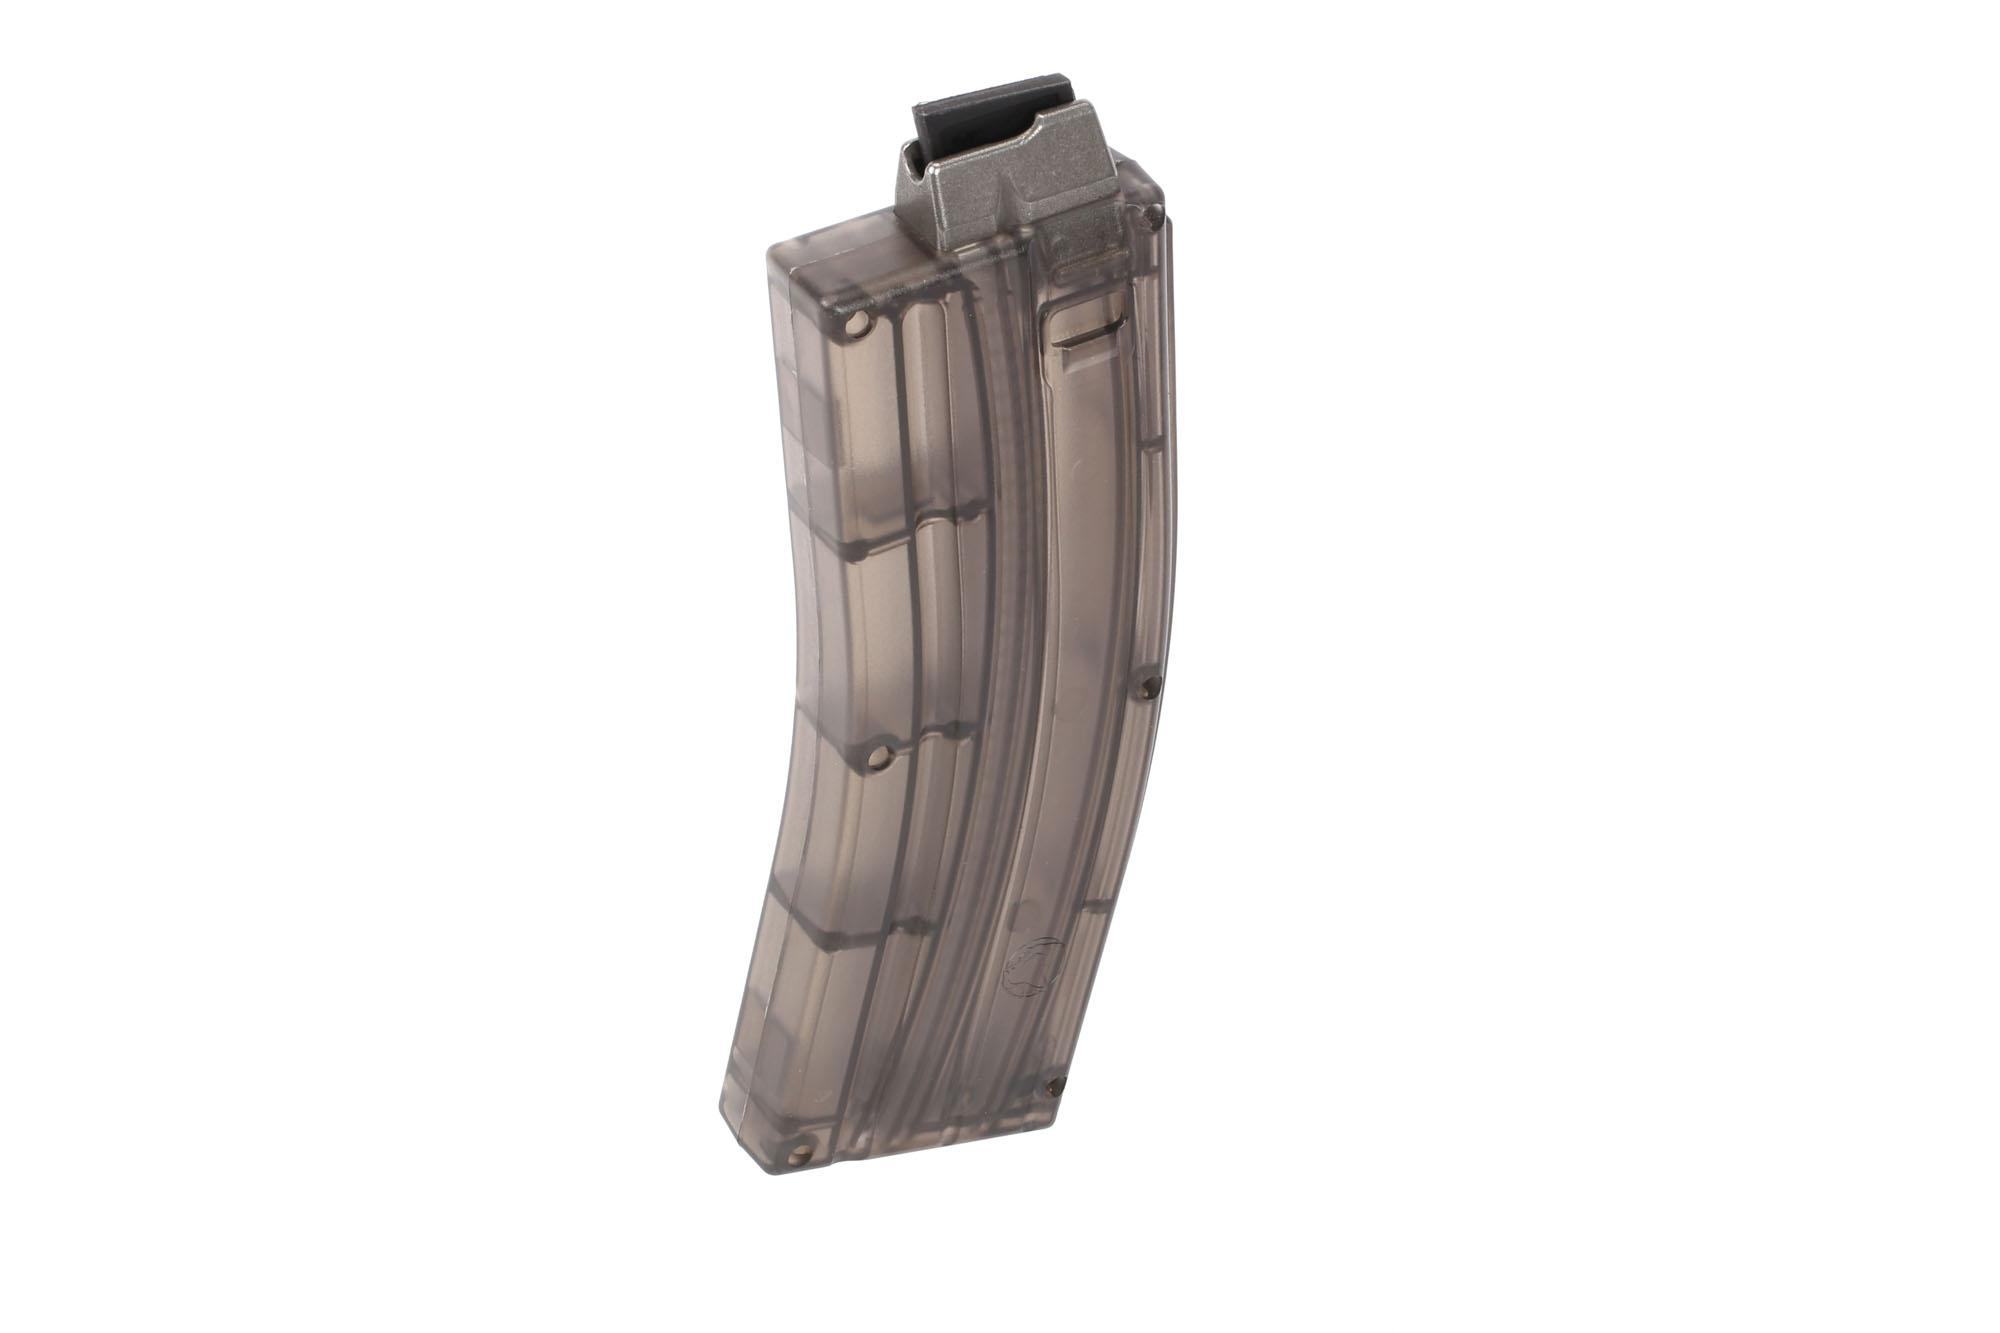 2A Armament AR15 .22LR 25-Round Magazine - Steel Feed Lip - Translucent Smoke